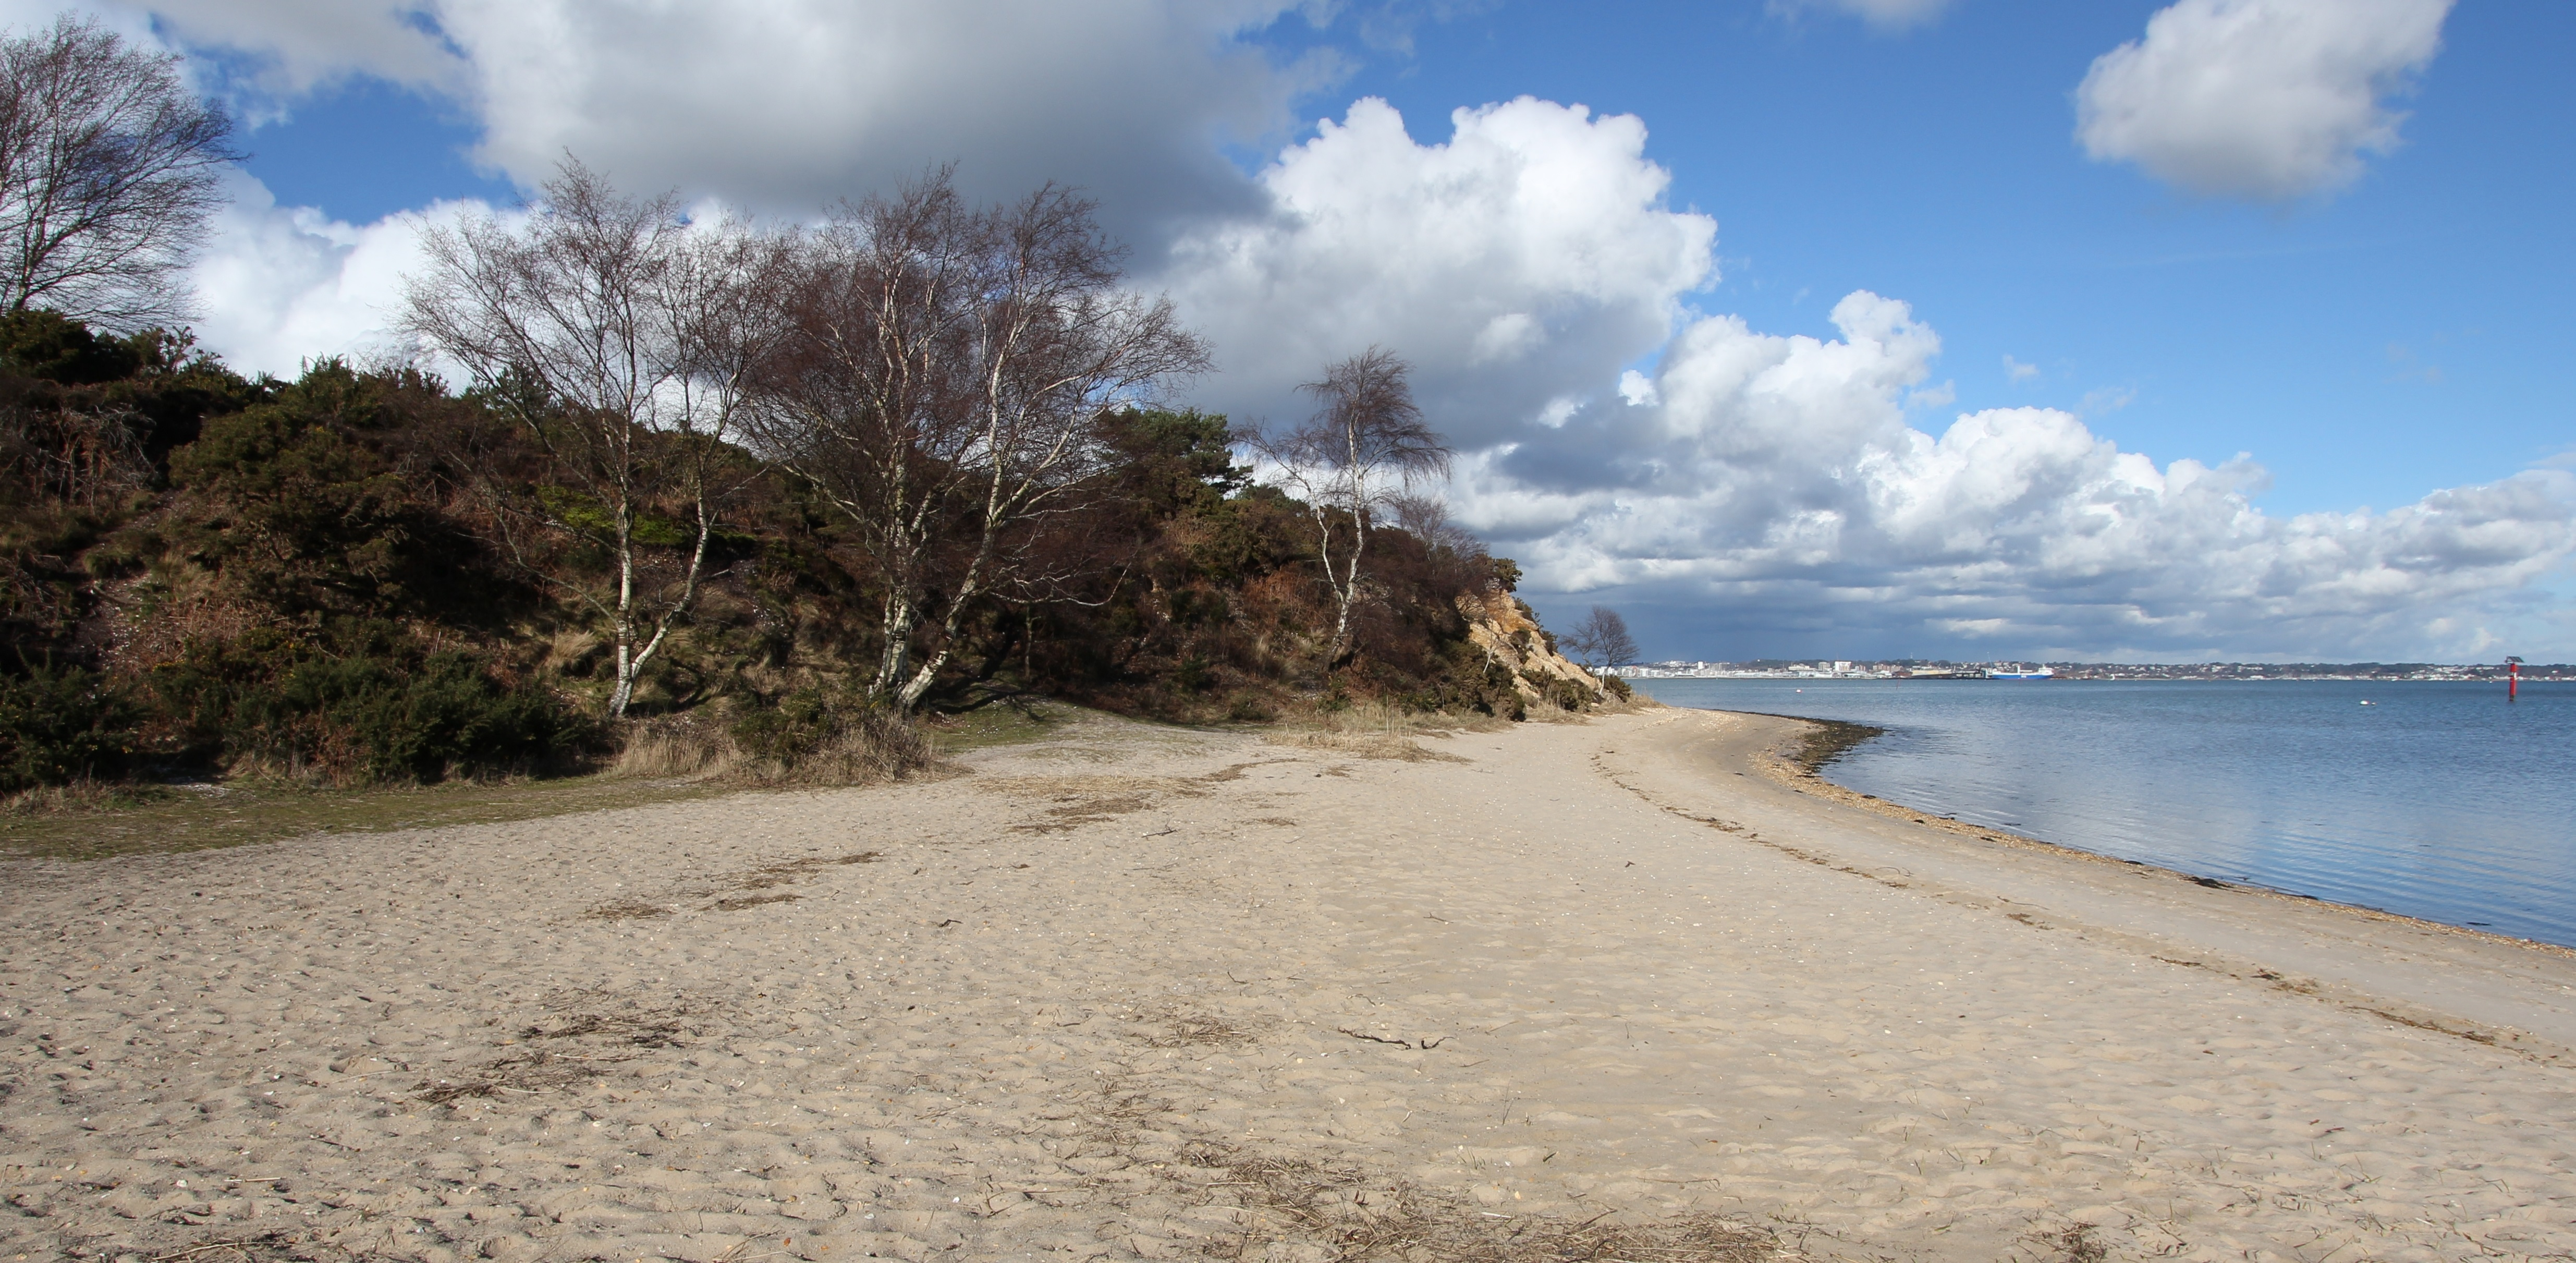 The view looking ENE at the southern end of Shipstal Beach. The path up to Shipstal Hill or back through the inland reserve is to the left. The southern spit (see below) continues in the bottom right of the photo.